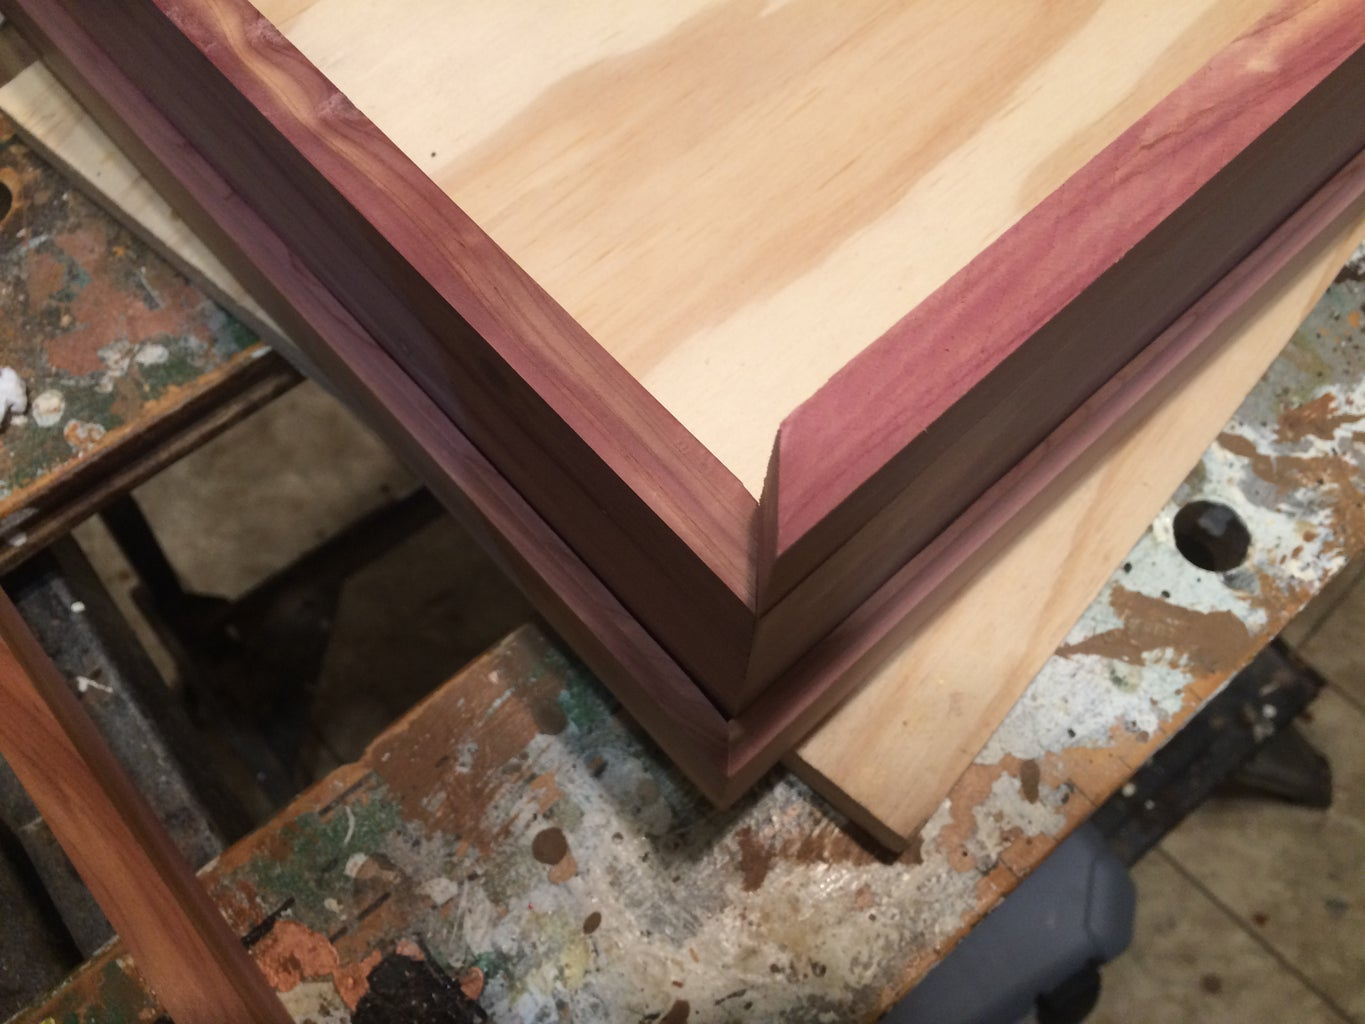 Building the Lid